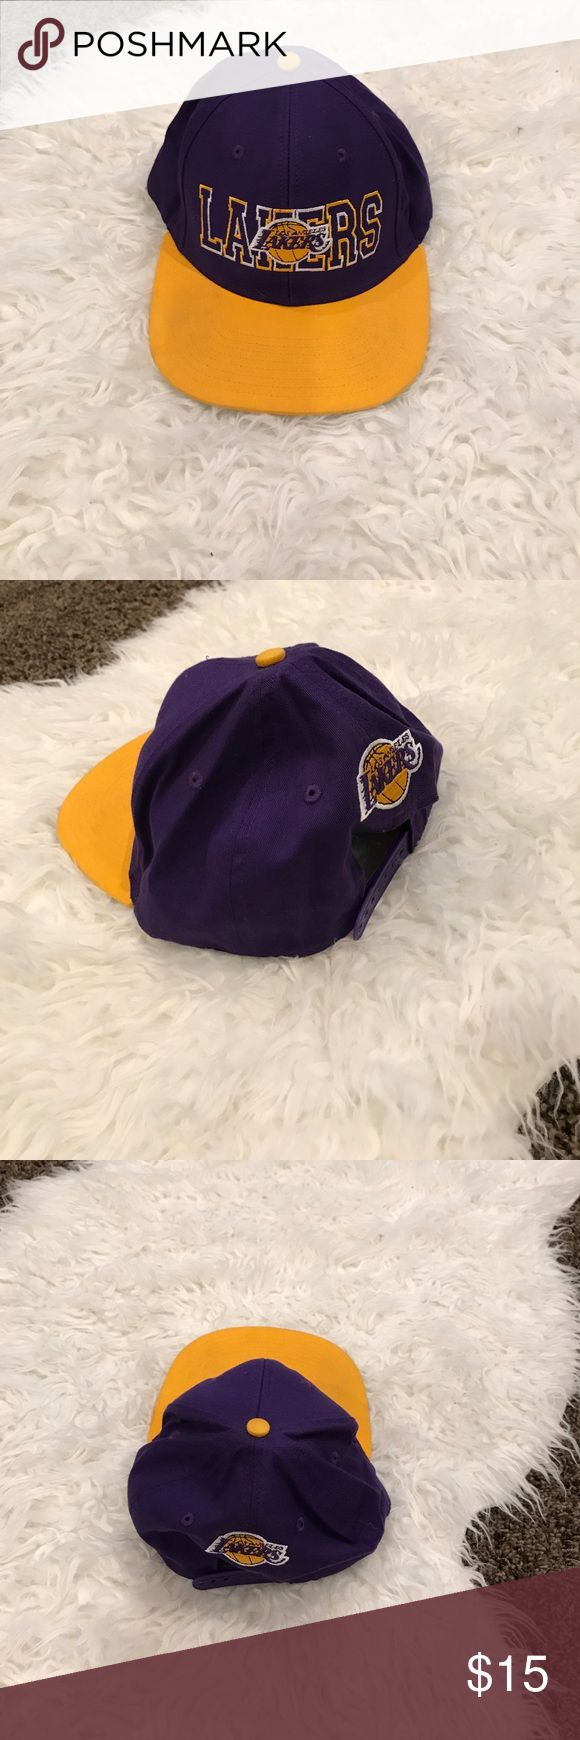 Lakers cap. Laker cap. Very stylish. Get it soon before its gone. Accessories Hats